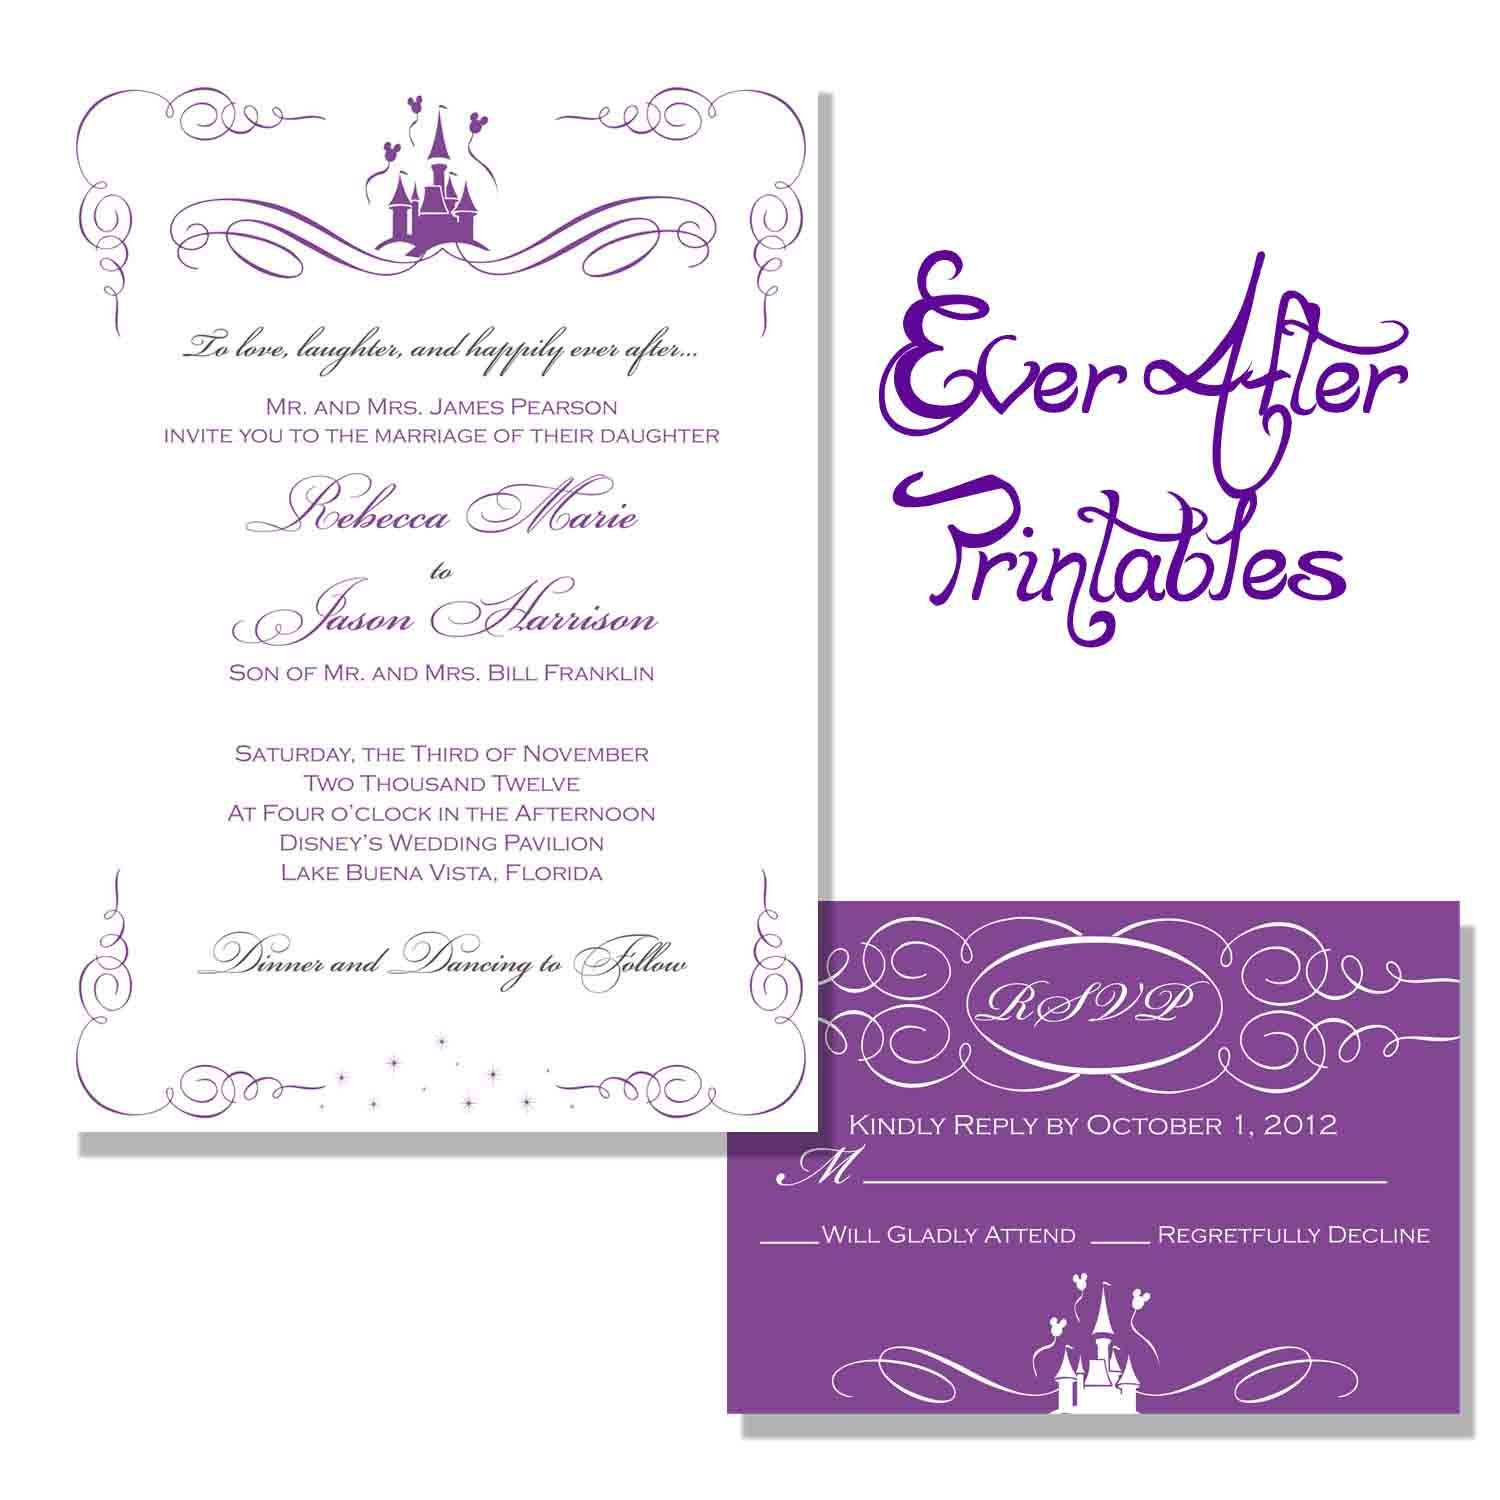 Wedding Invitation Wording Wording | Getting hitched | Pinterest ...